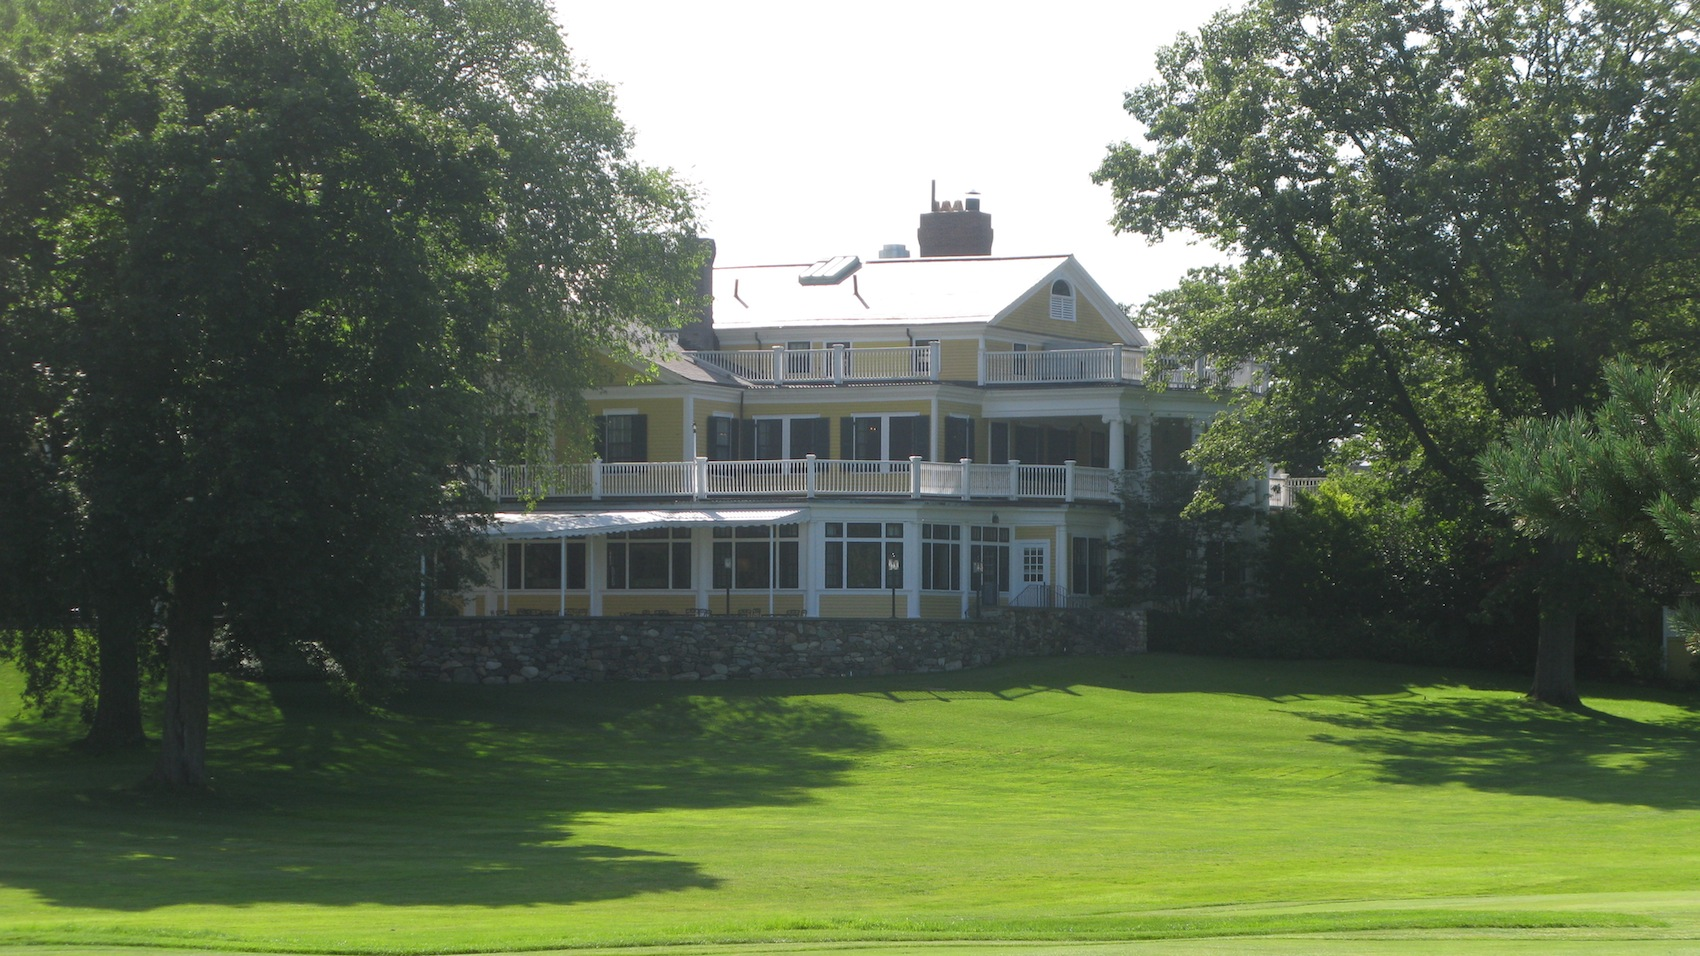 The Country Club - Clyde/Squirrel